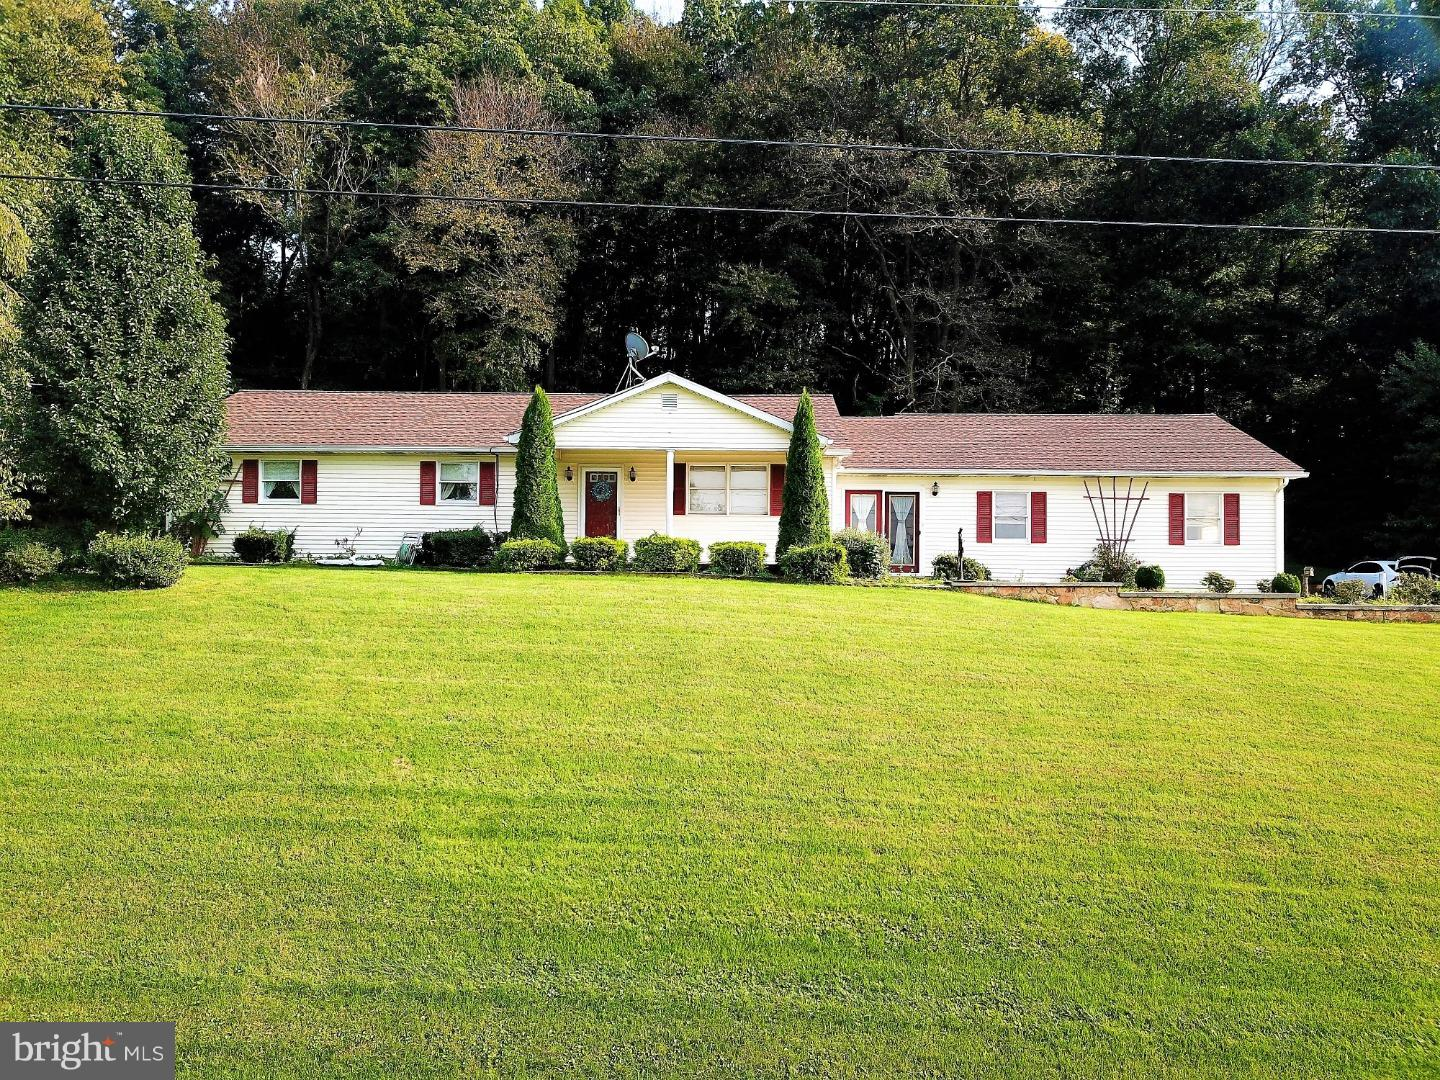 1124 PILGRIMS PATHWAY, PEACH BOTTOM, PA 17563